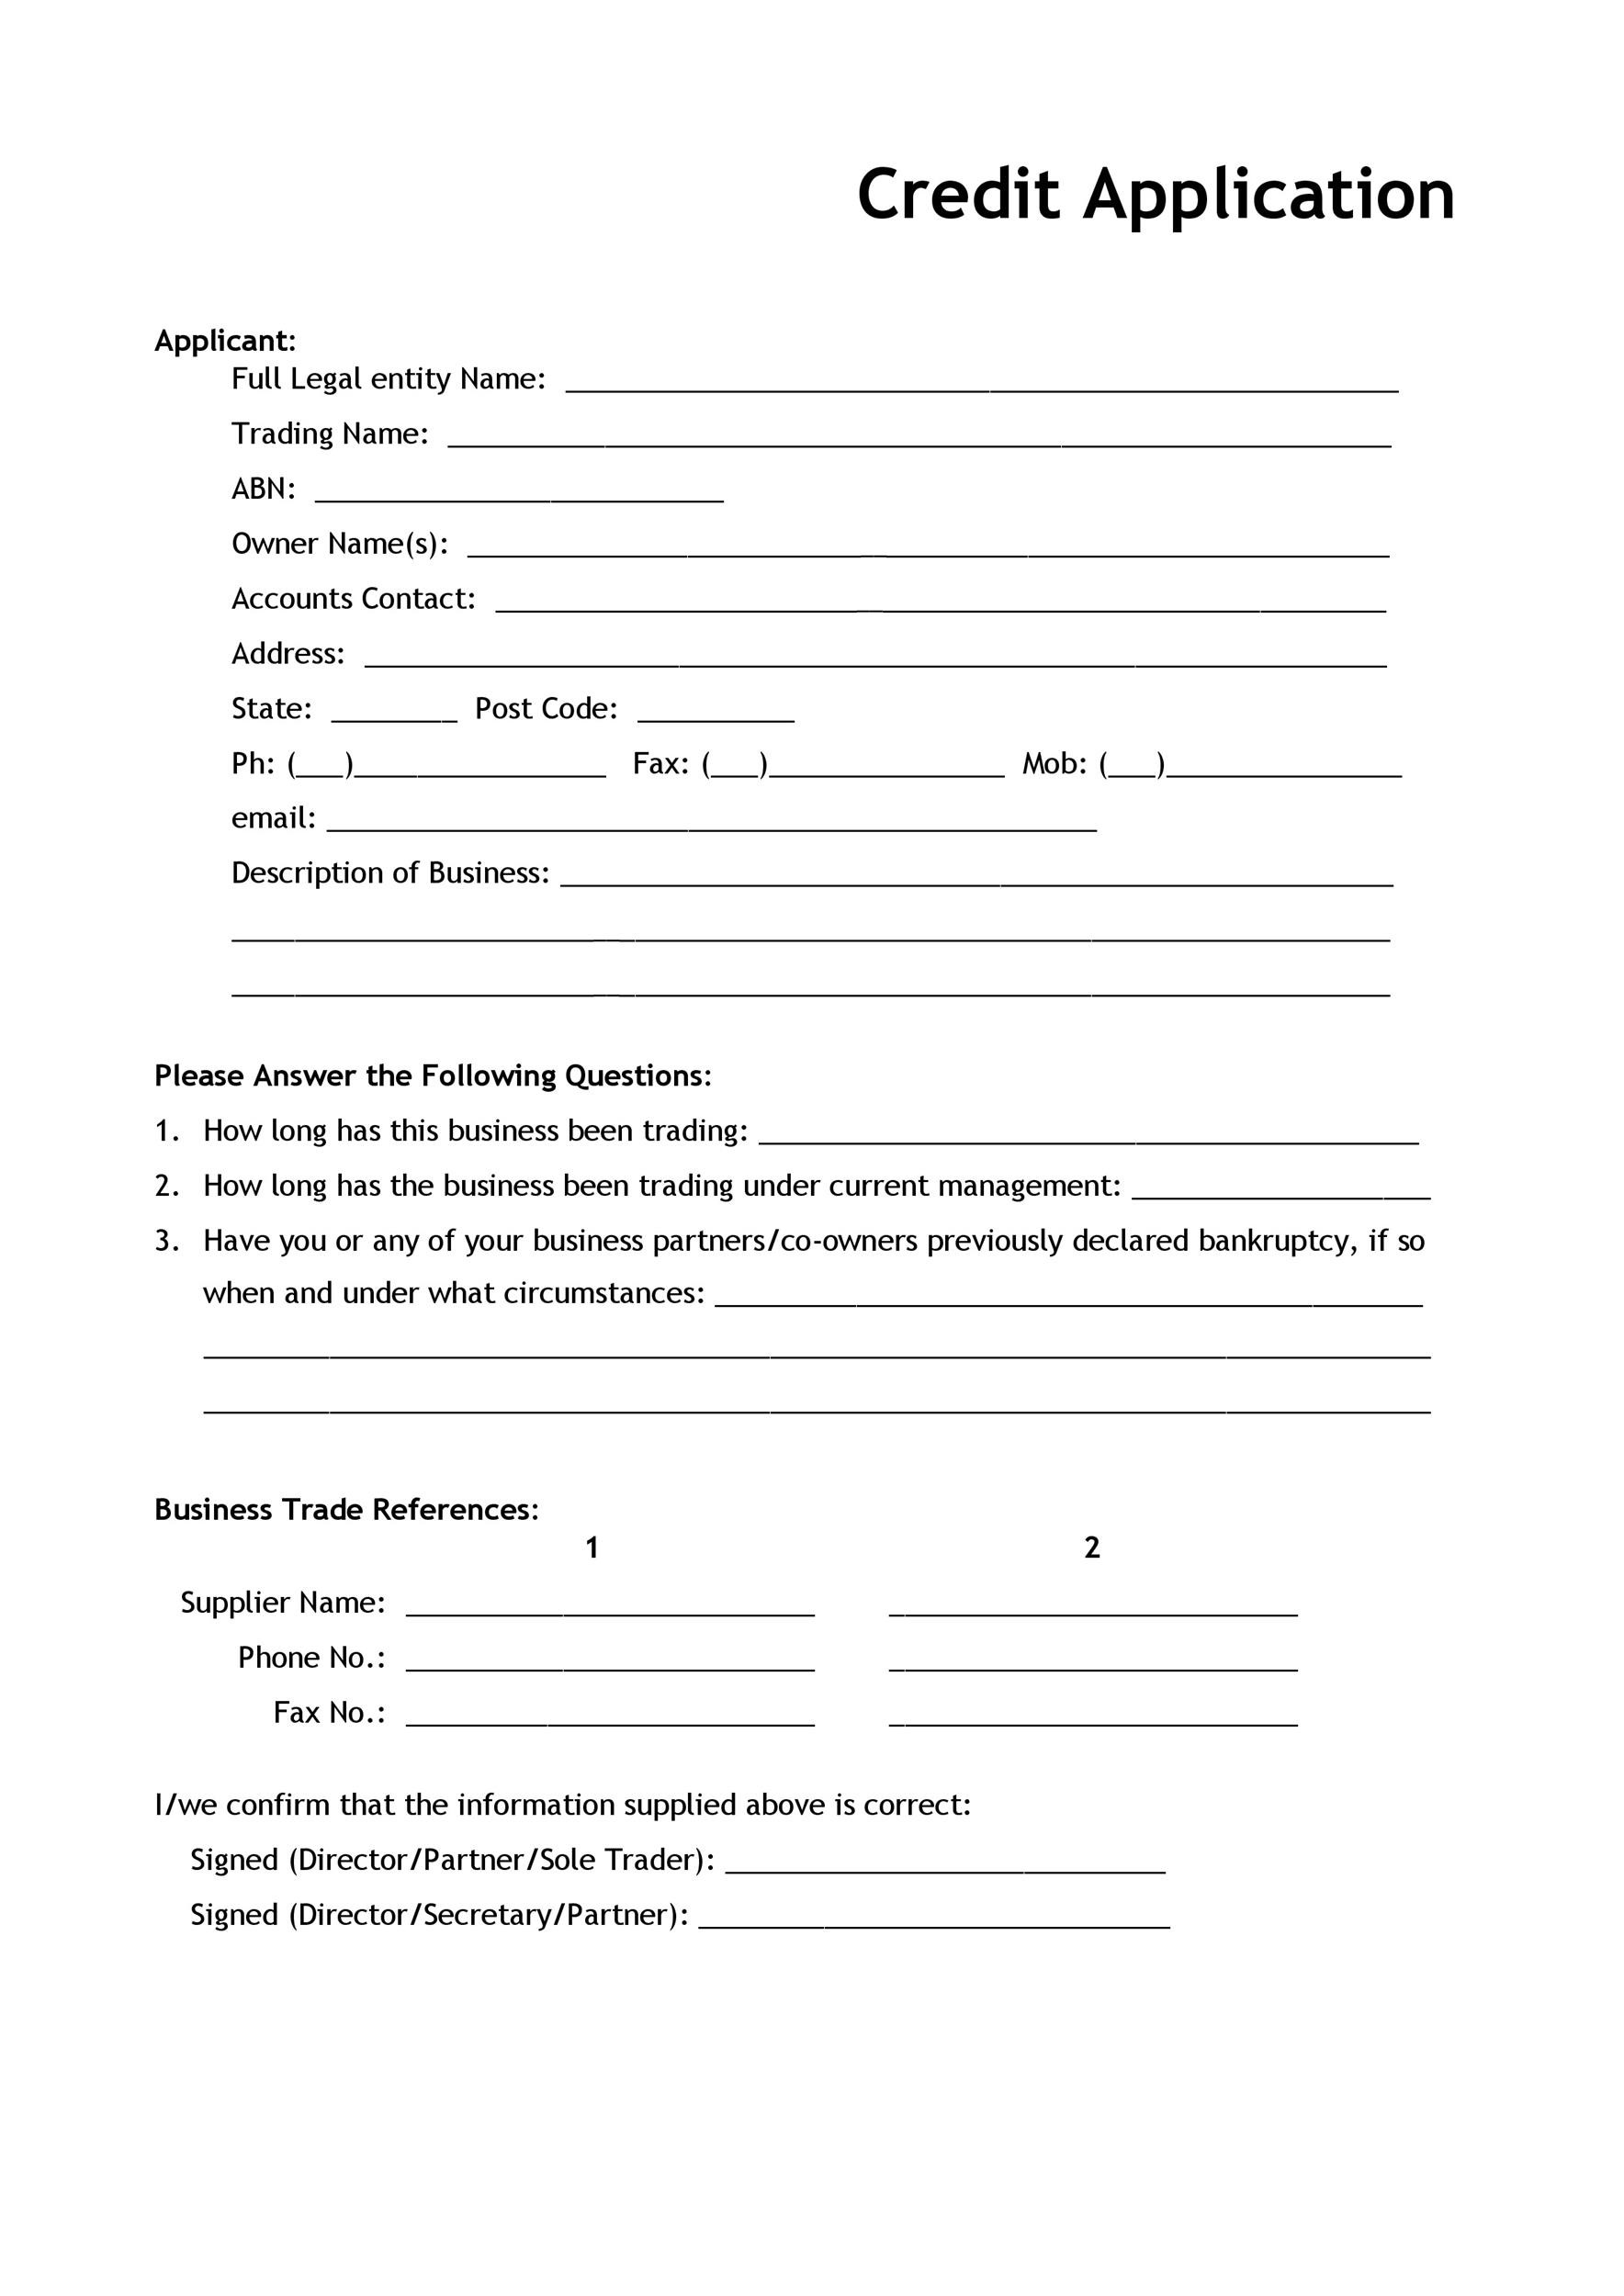 Free Credit Application Form 40